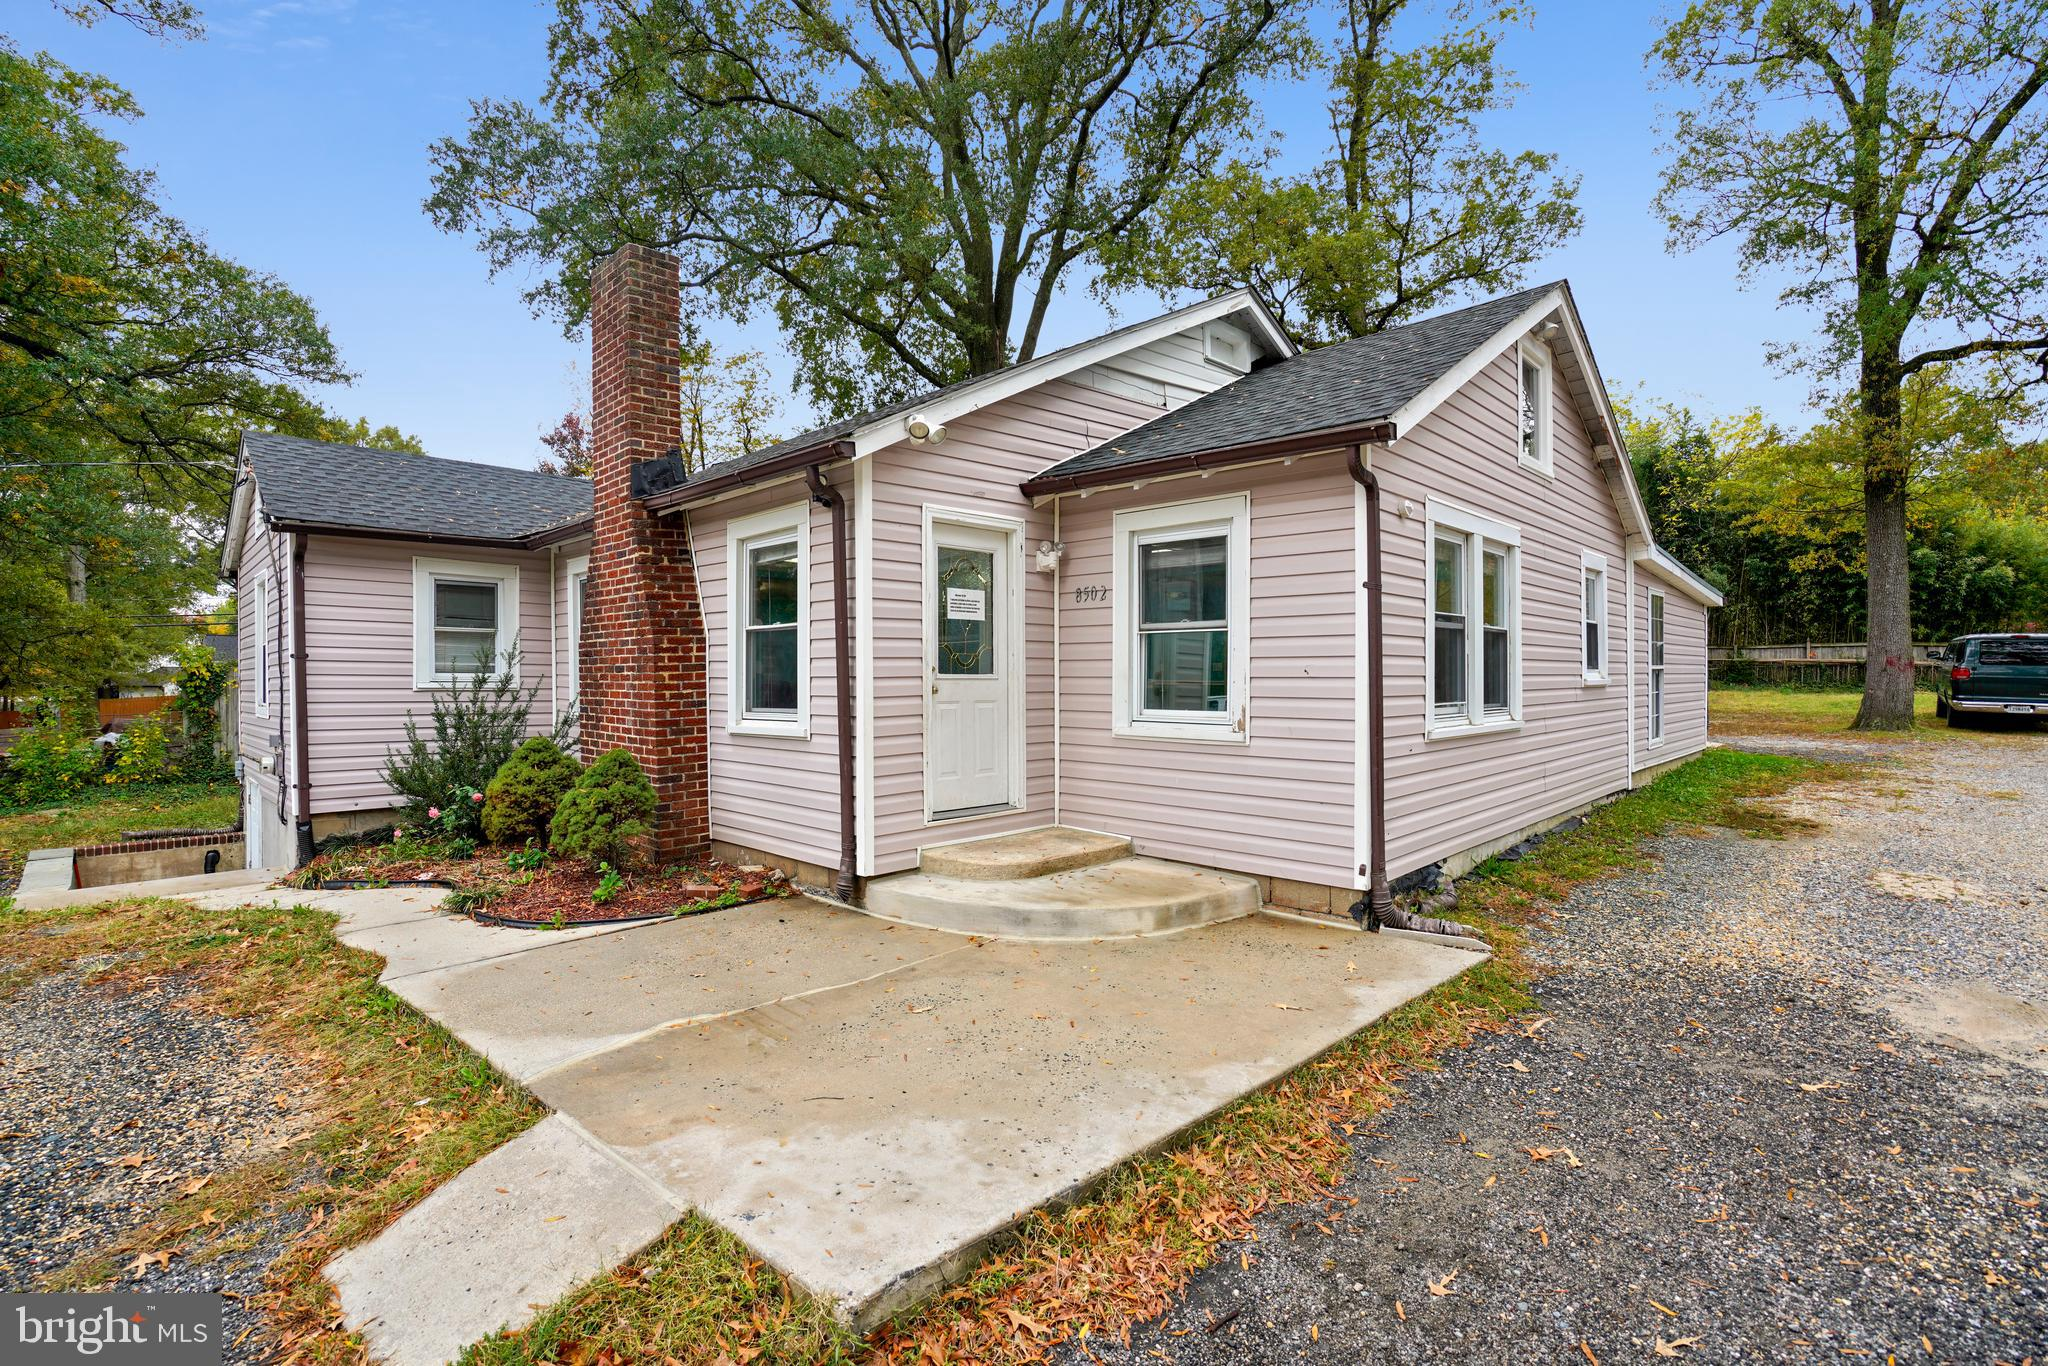 8502 ADELPHI ROAD, ADELPHI, MD 20783